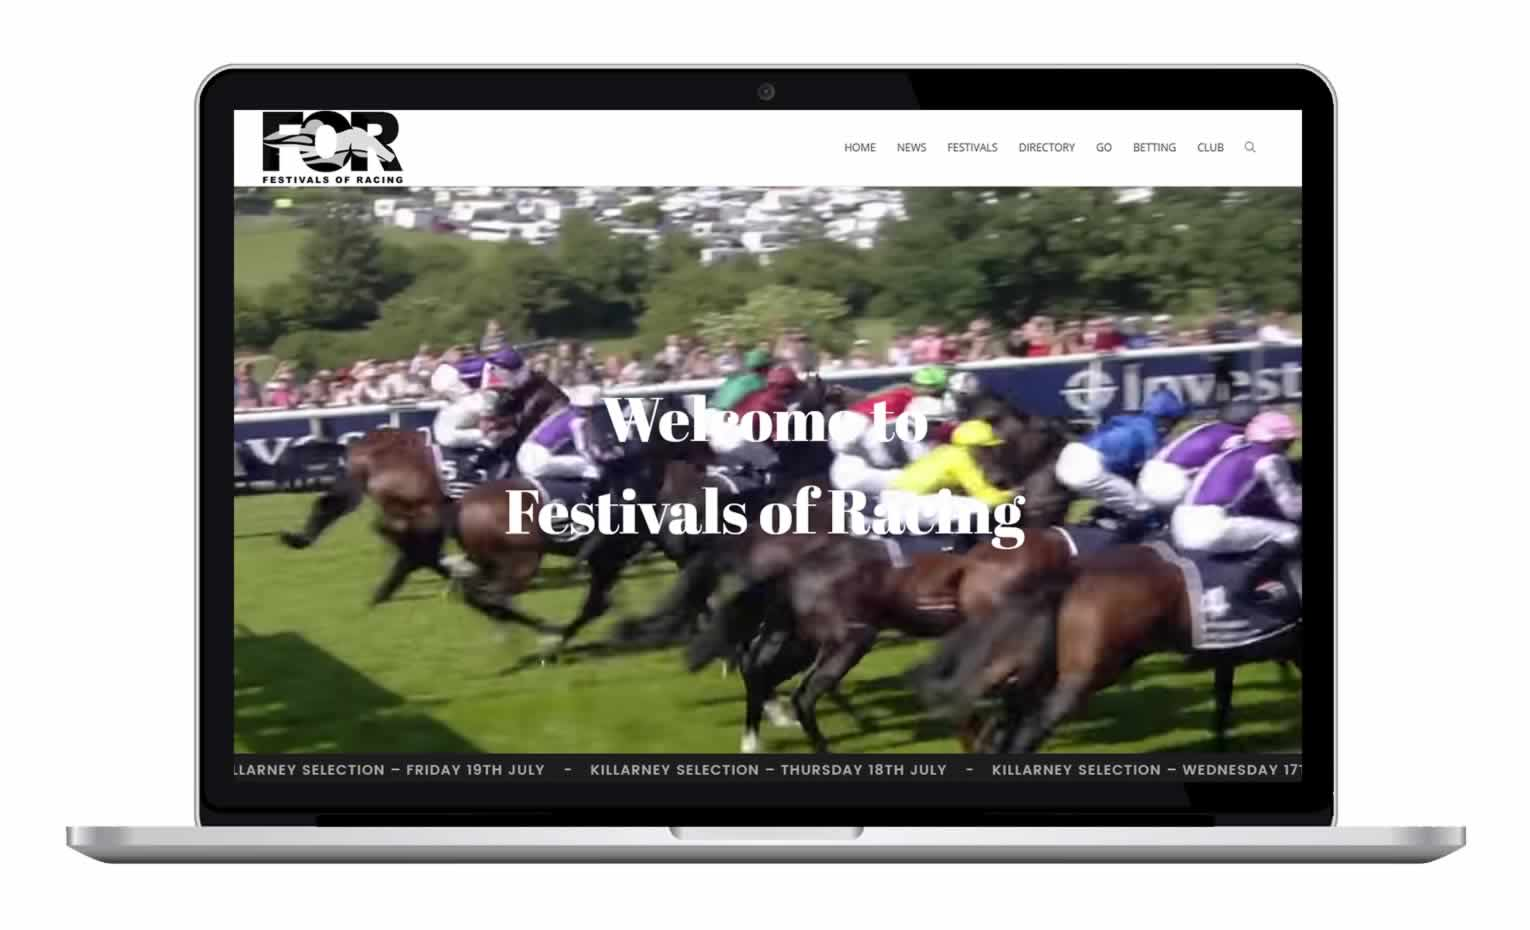 Festivals of Racing - Equestrian News Website focused on horse racing